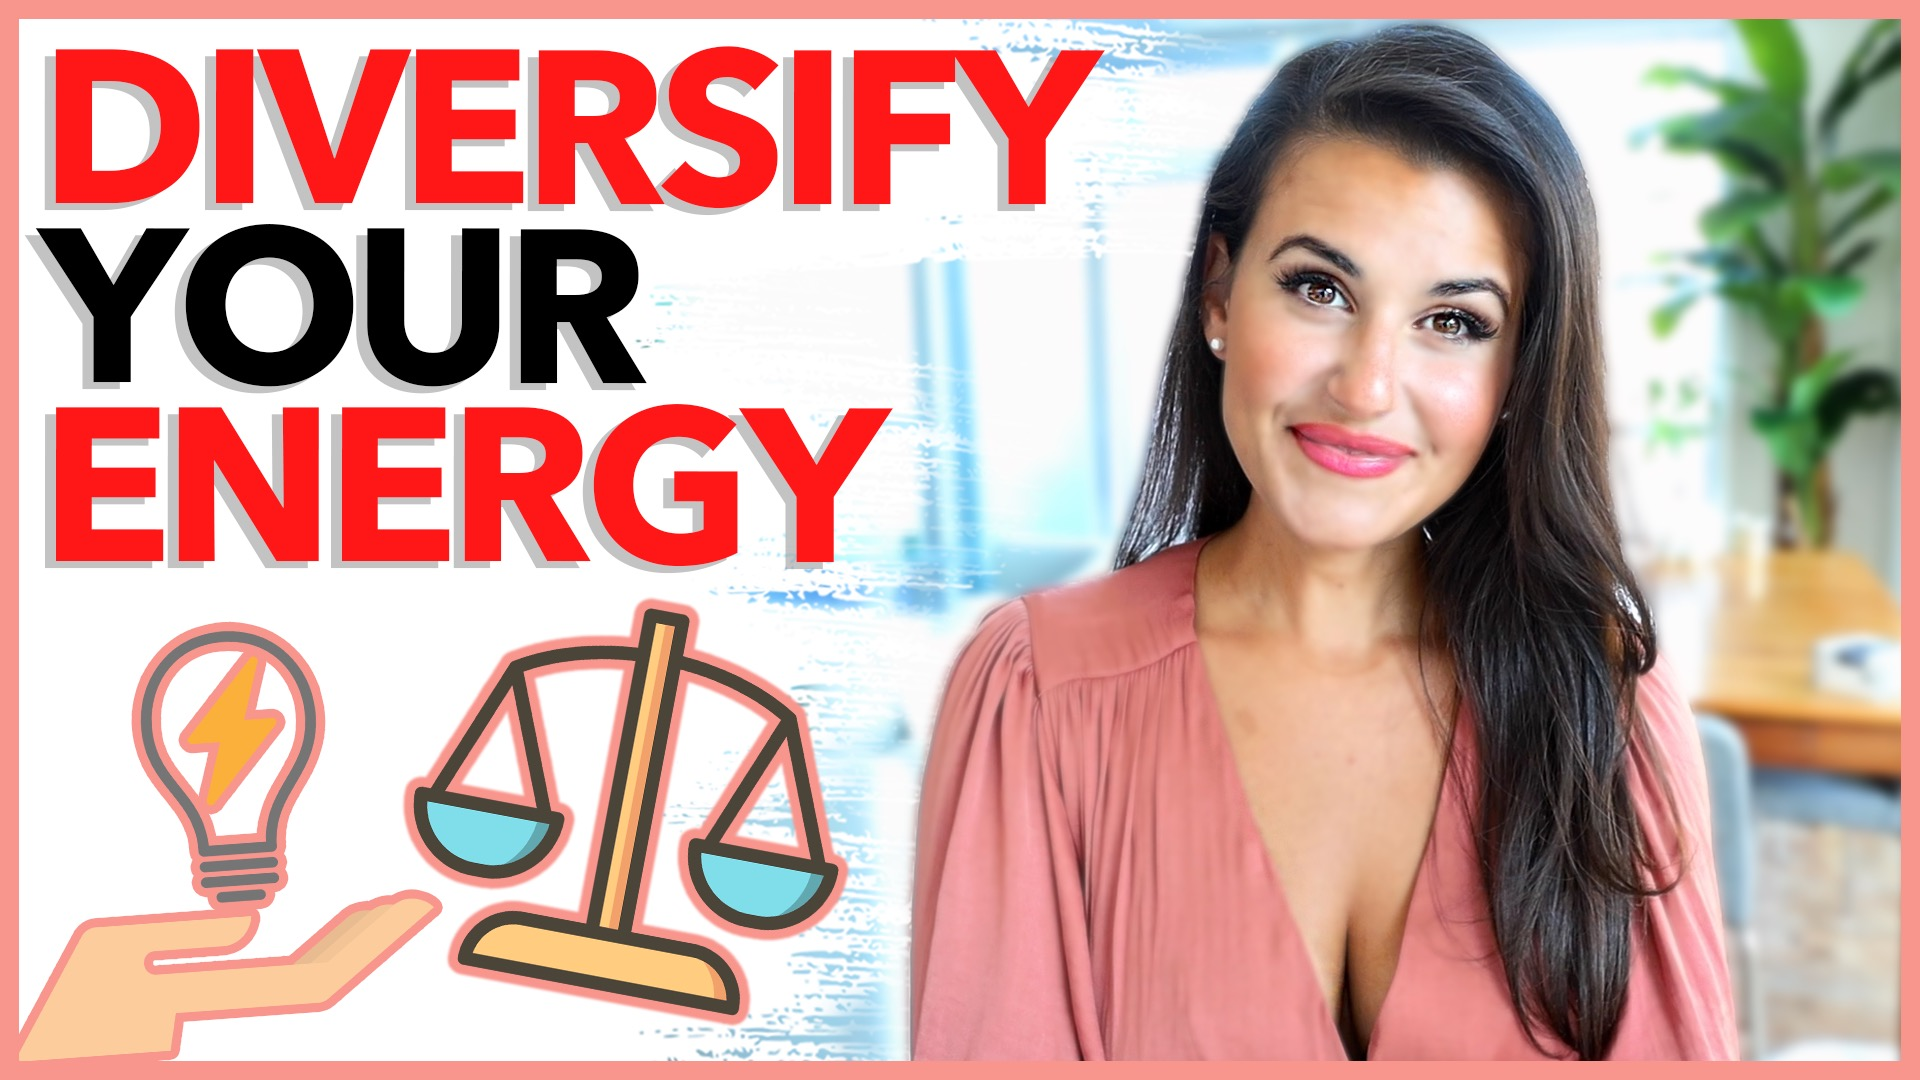 DIVERSIFY YOUR ENERGY!?